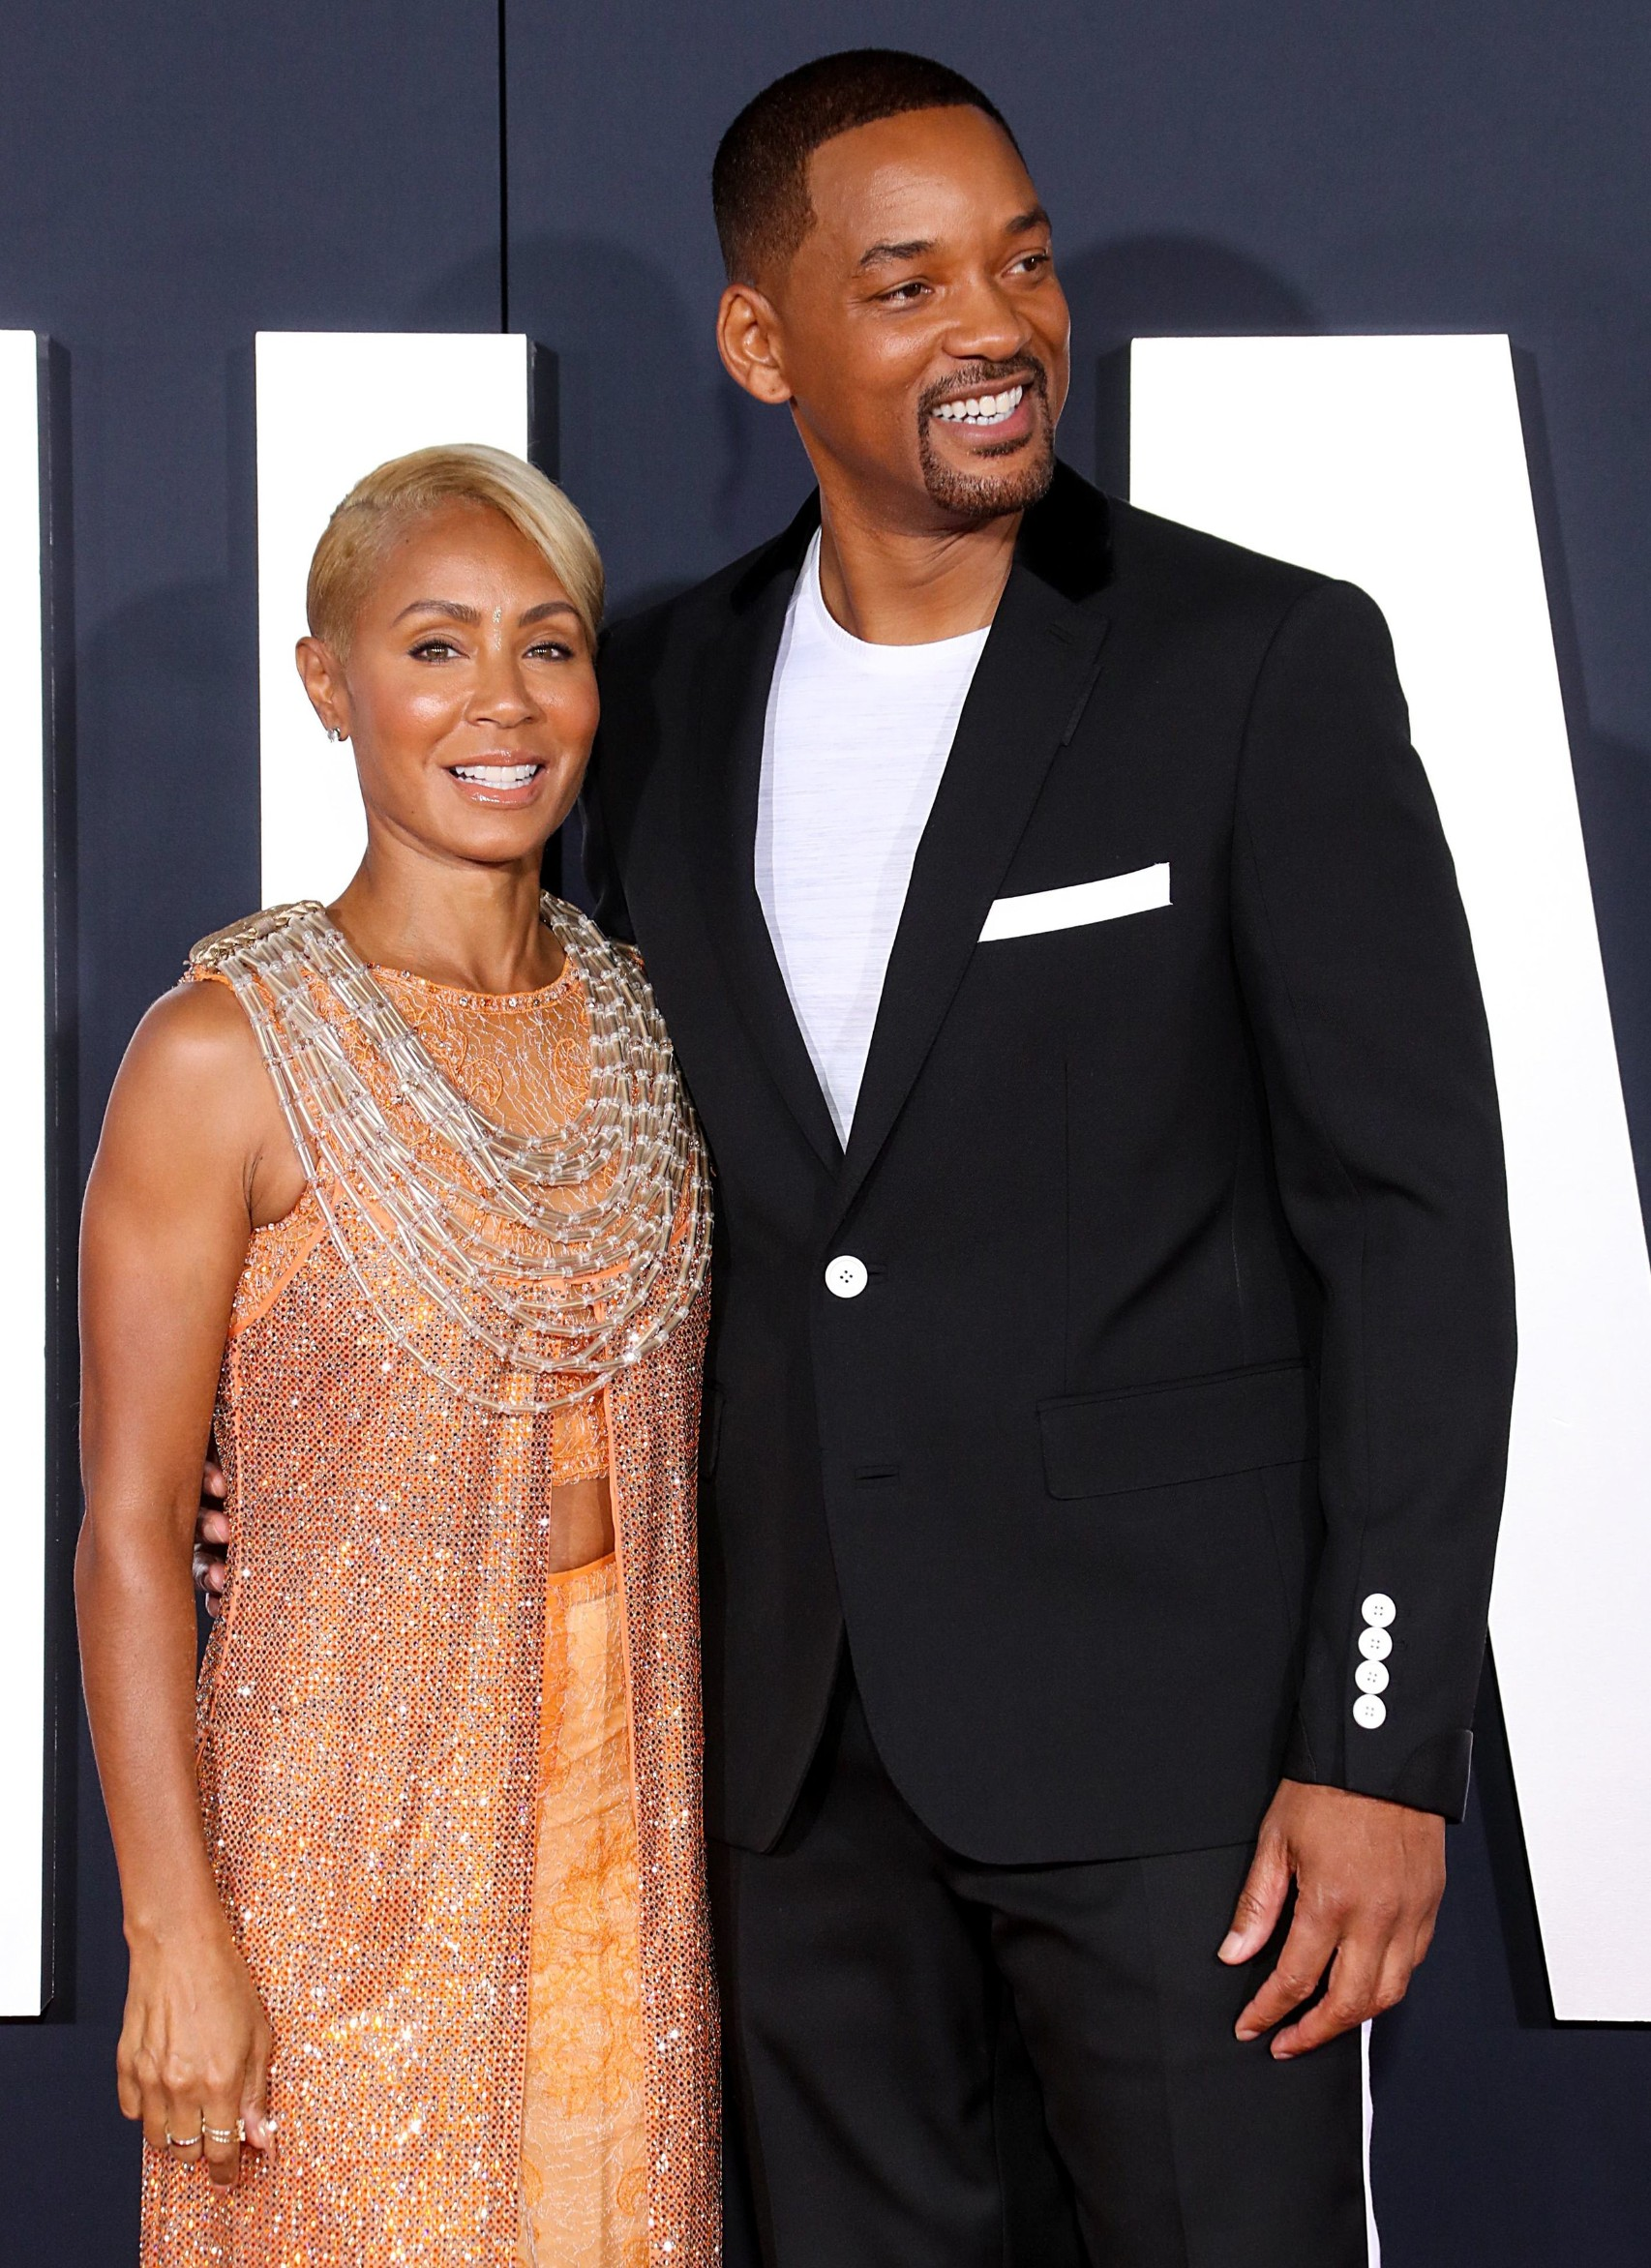 Will Smith and Jada Pinkett Smith   'Gemini Man' film premiere, Arrivals, TCL Chinese Theatre, Los Angeles, USA - 06 Oct 2019,Image: 475382602, License: Rights-managed, Restrictions: , Model Release: no, Credit line: Matt Baron / Shutterstock Editorial / Profimedia